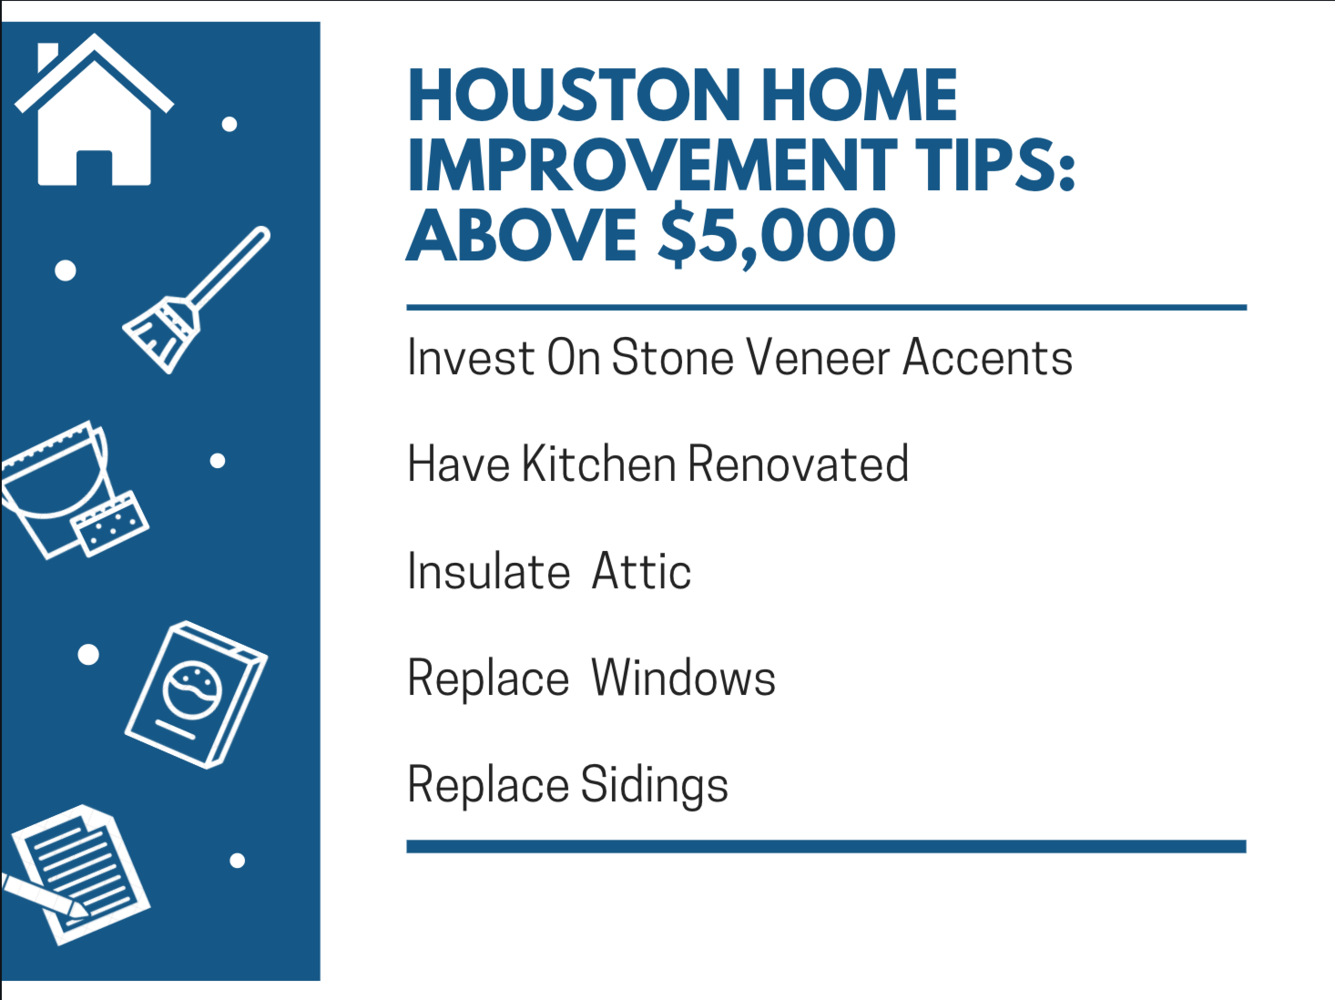 Houston Home Improvement Tips: Above $5,000